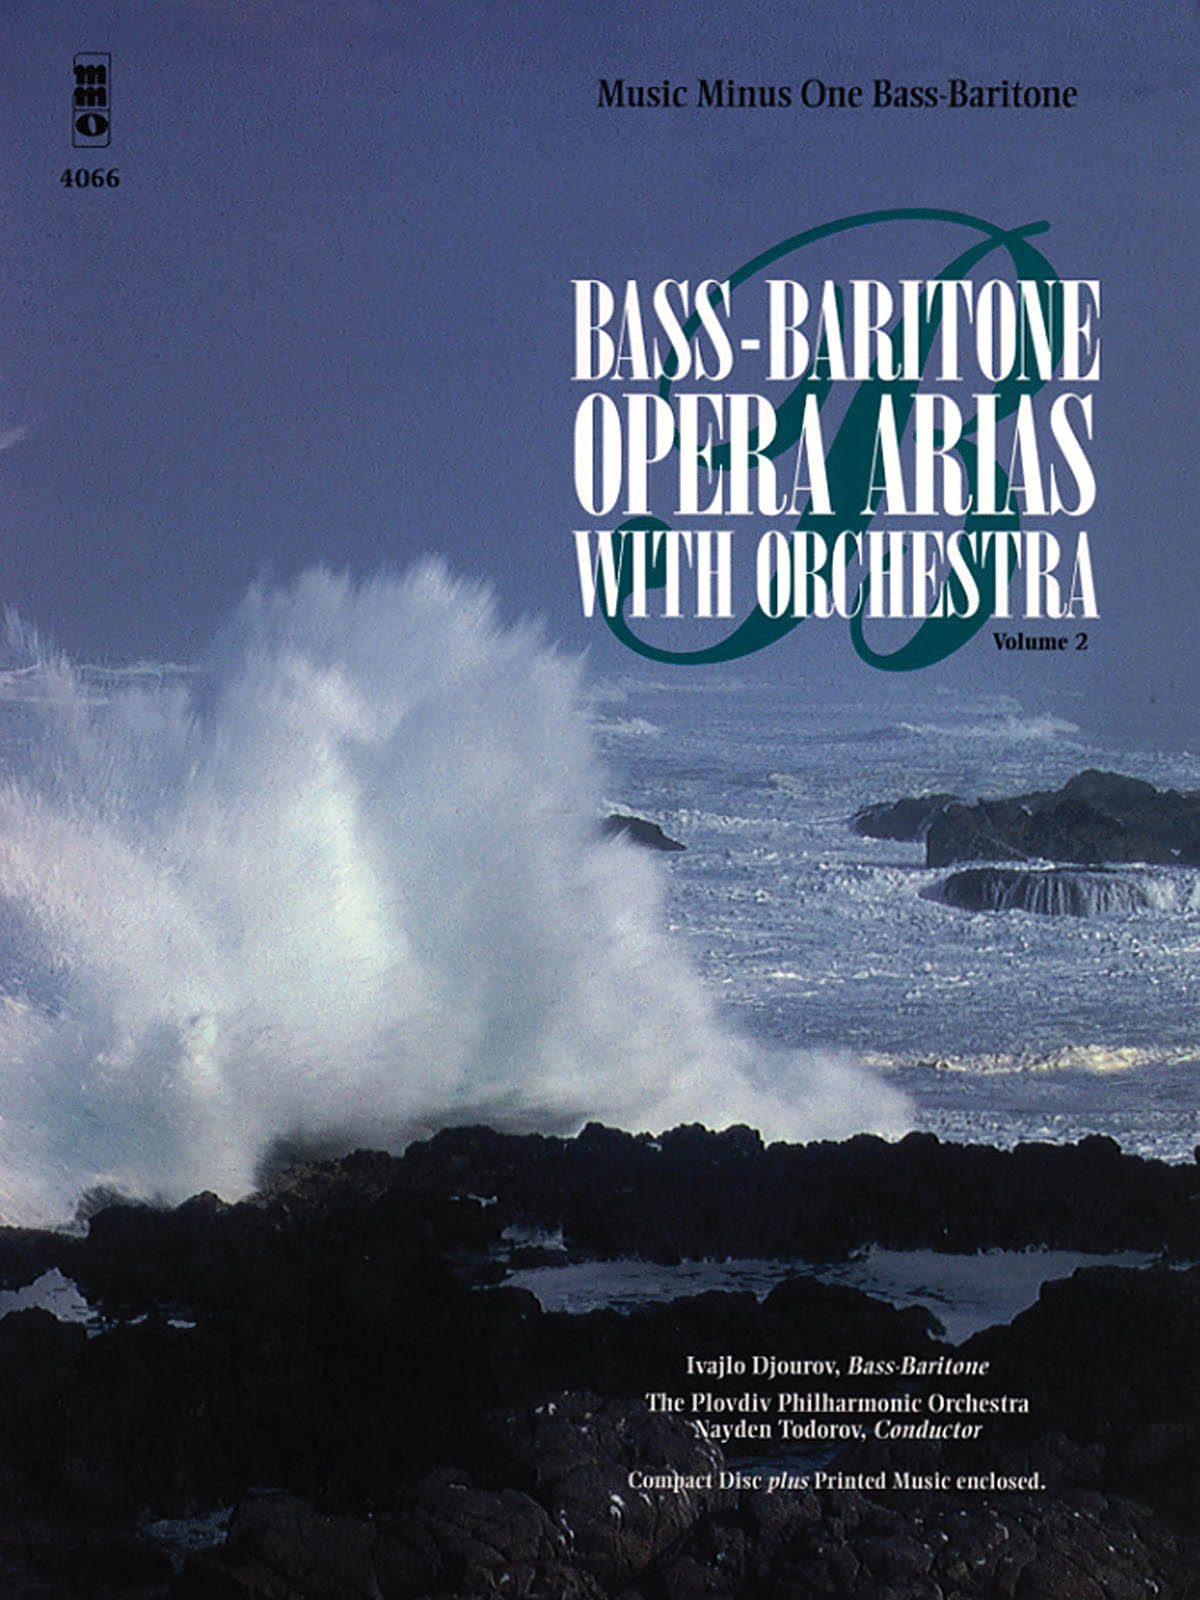 Bass-Baritone Arias with Orchestra - Volume 2: Vocal Solo: Vocal Collection